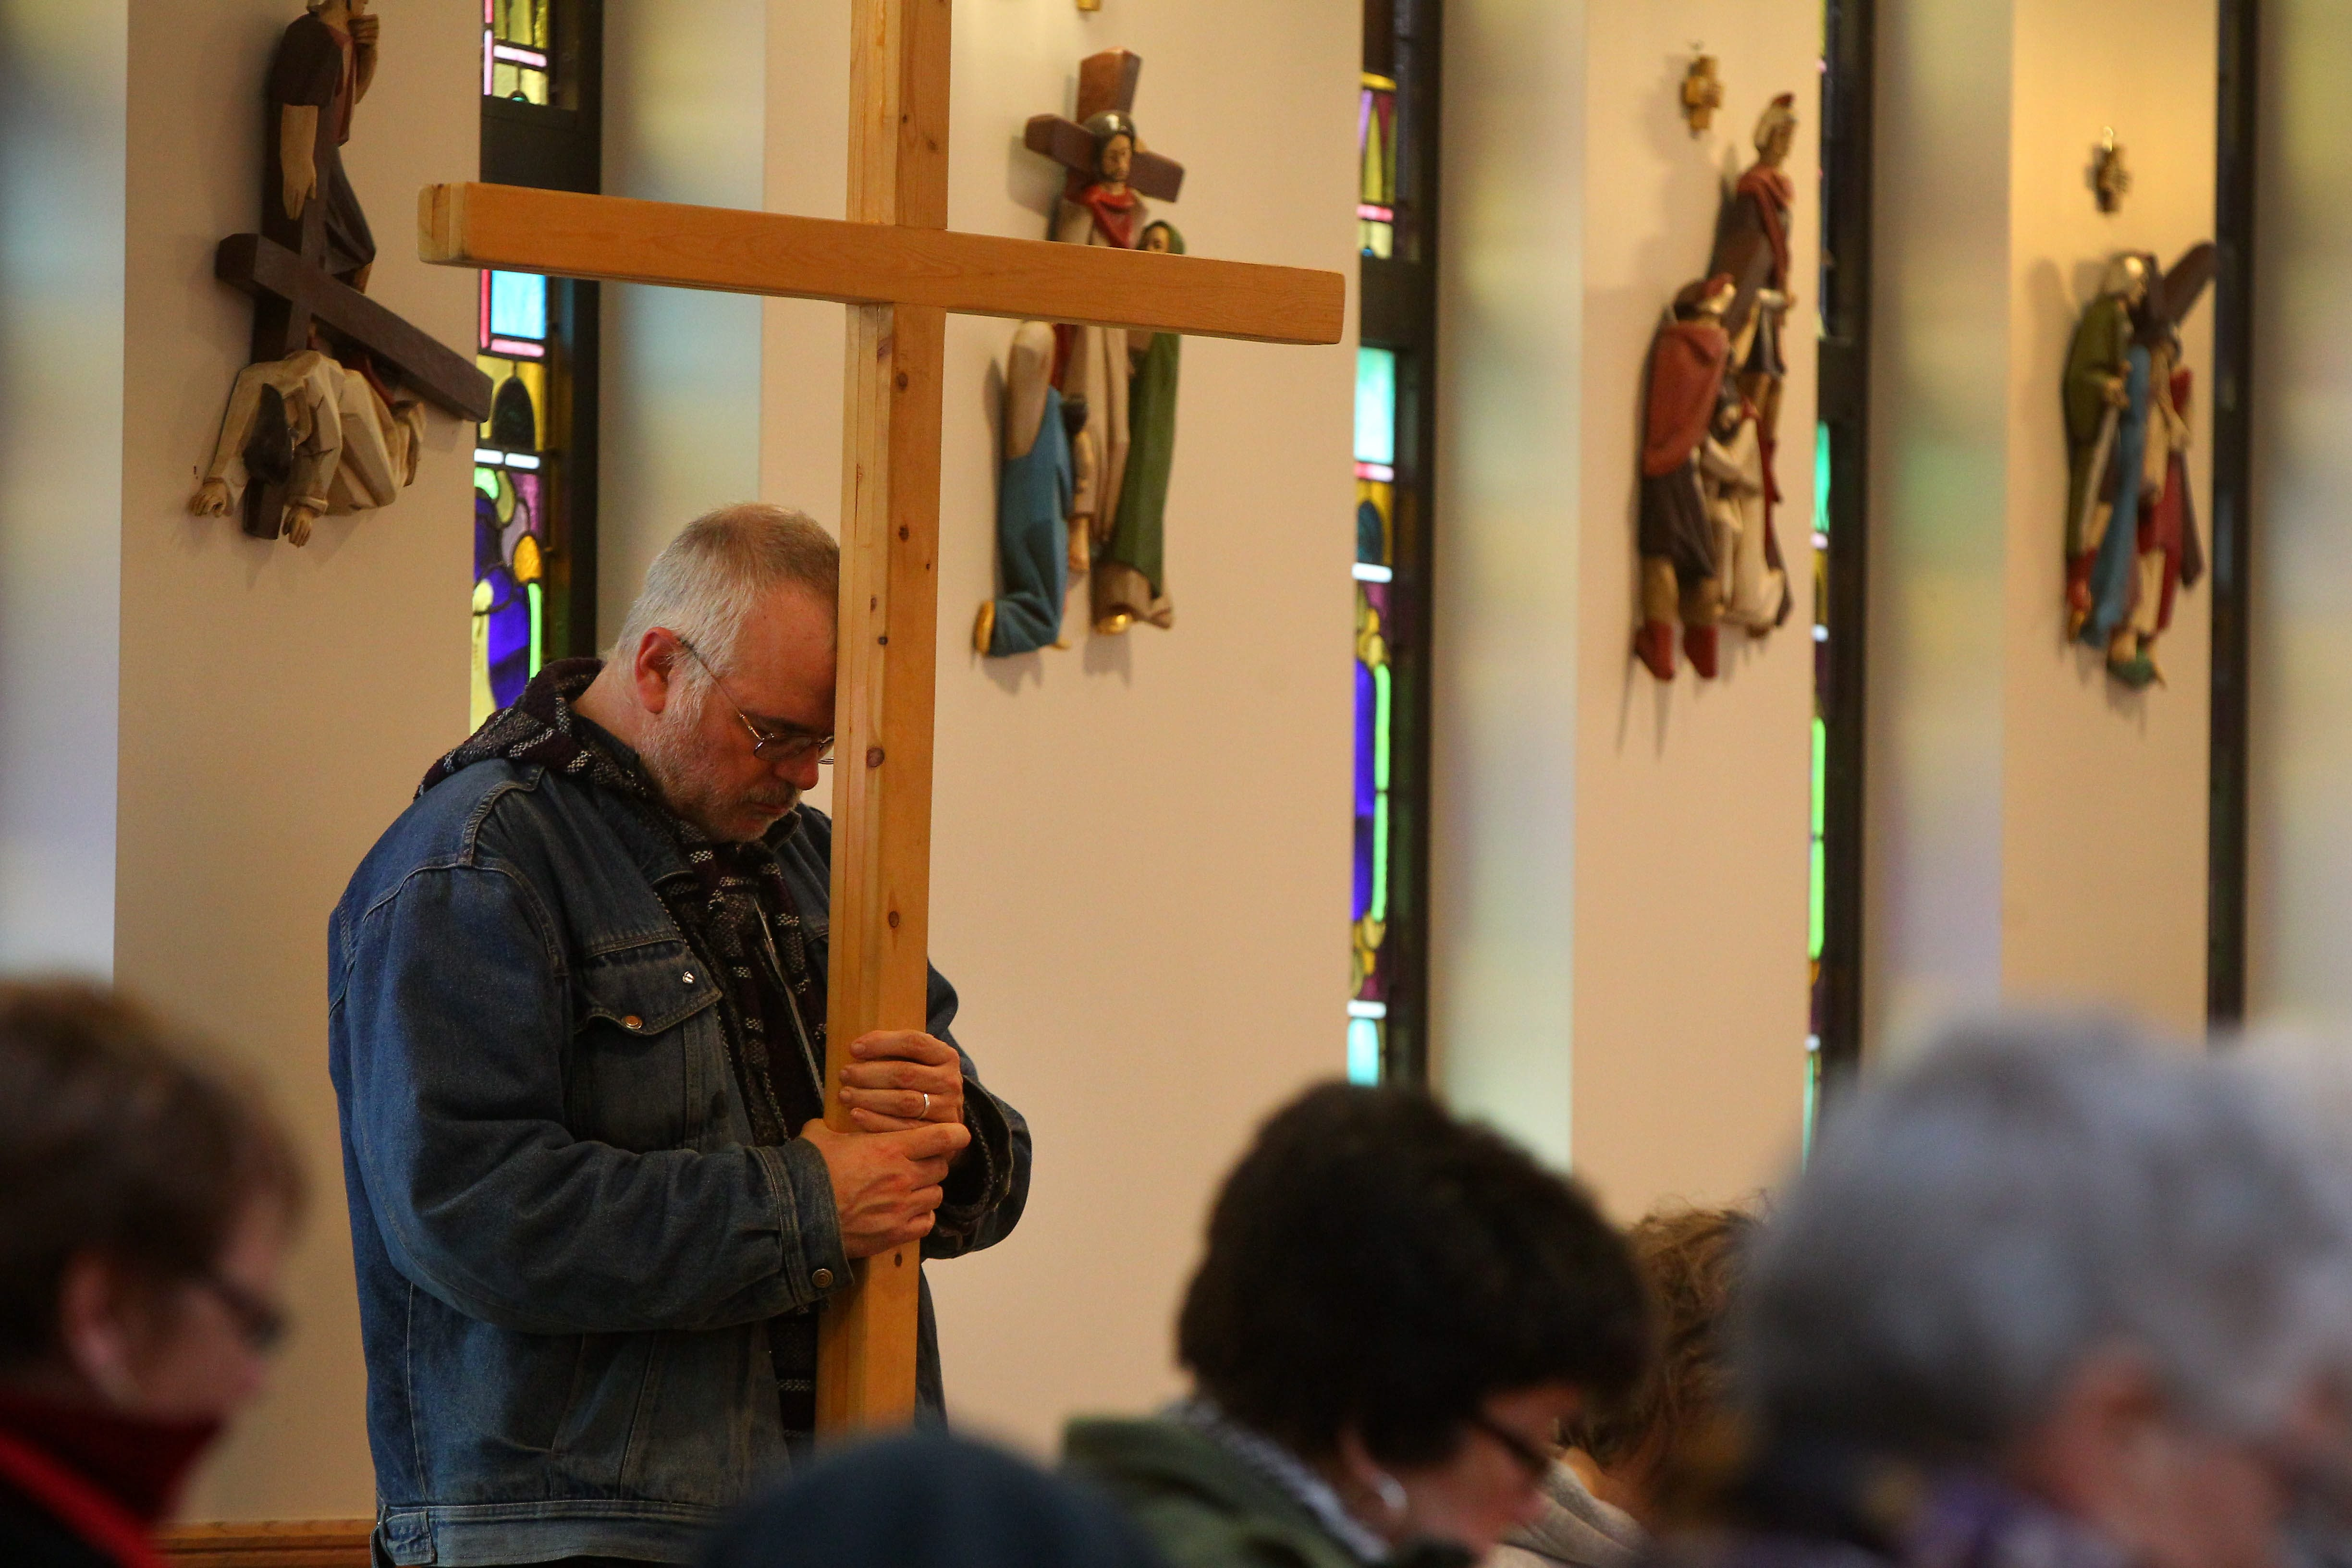 Matt Boyle carries the cross during the Stations of the Cross service commemorating 10th anniversary of Sister Karen Klimczak's death.